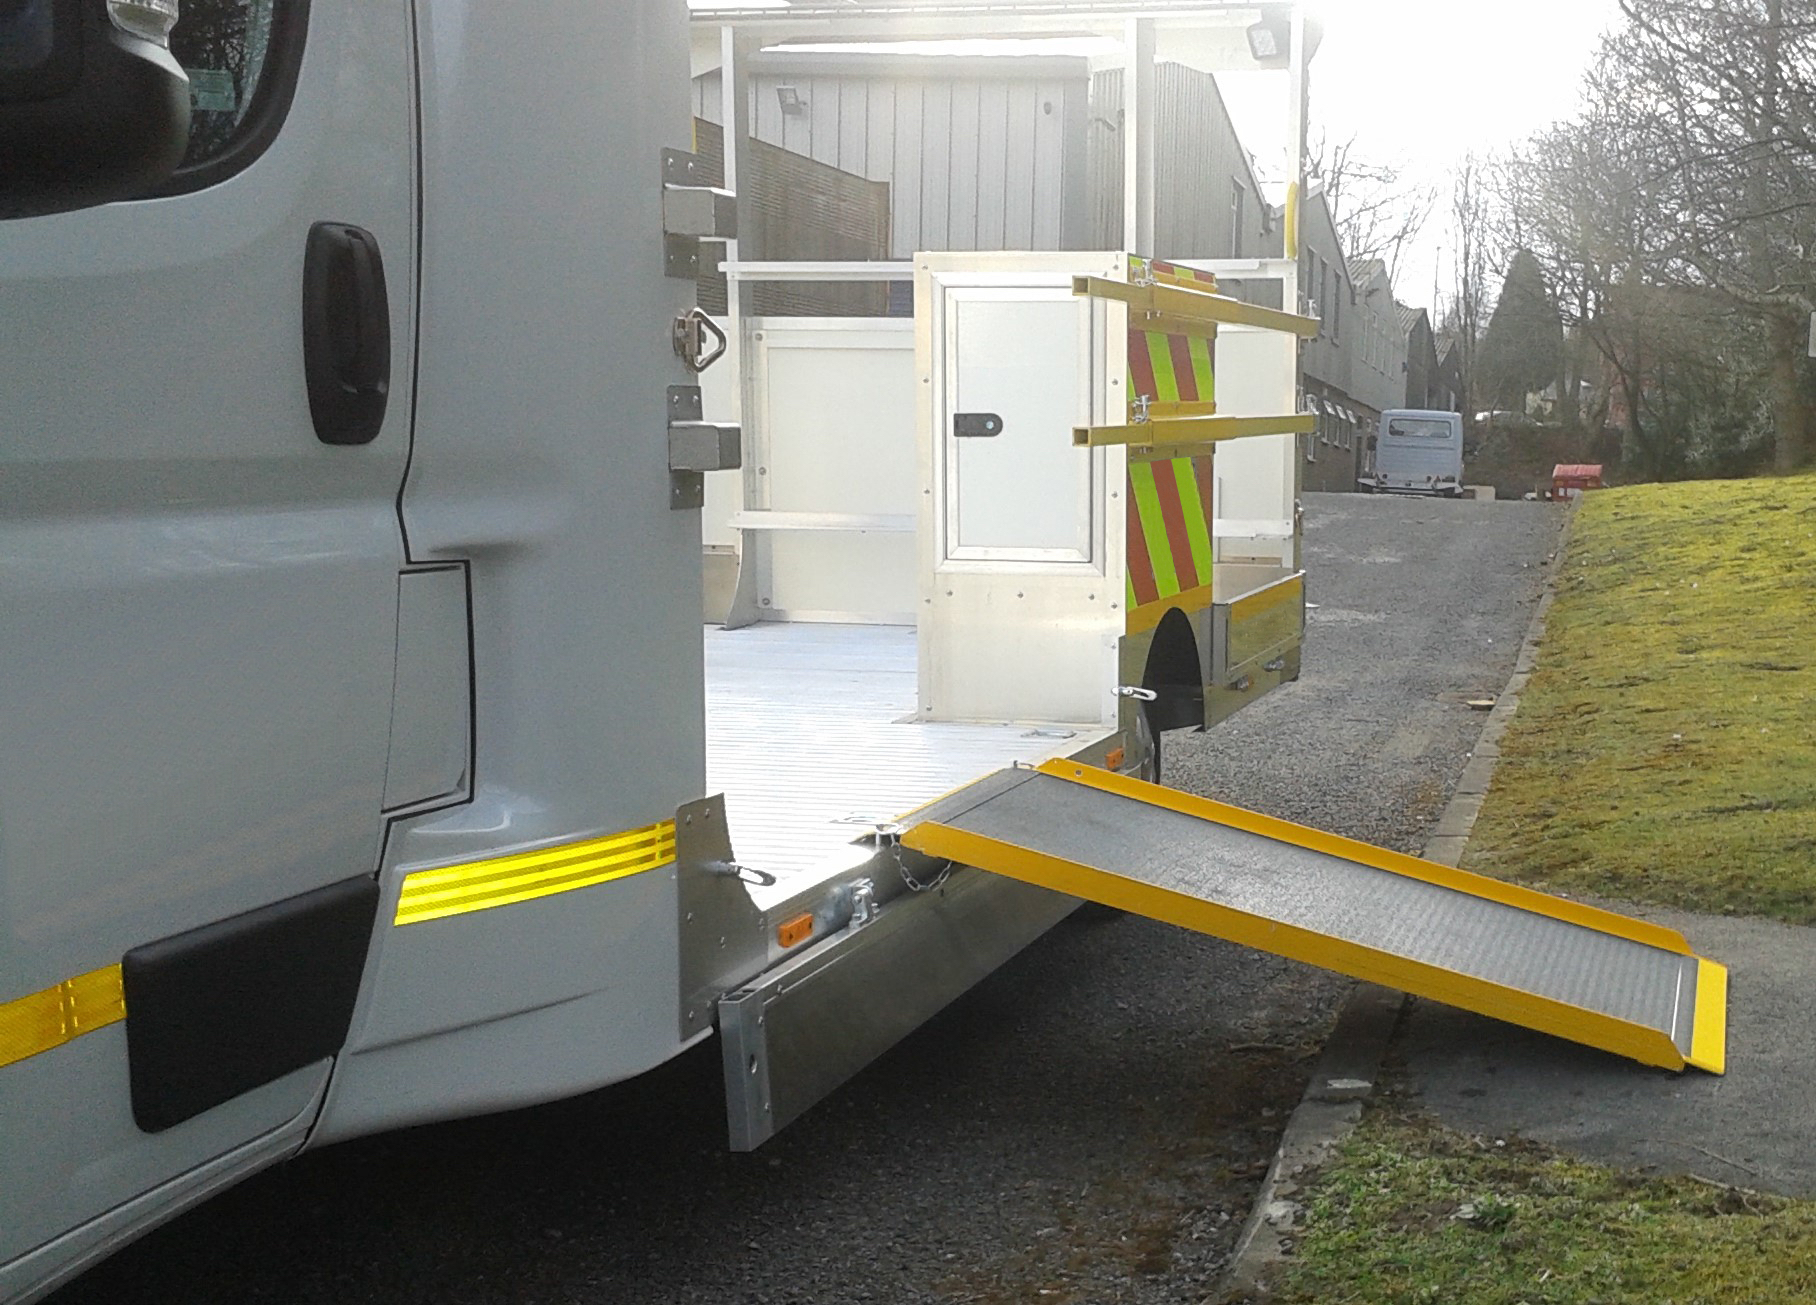 Blakedale's new low level traffic management vehicle allows operatives to step on and off the working area quickly and safely and removes the need for cone wells